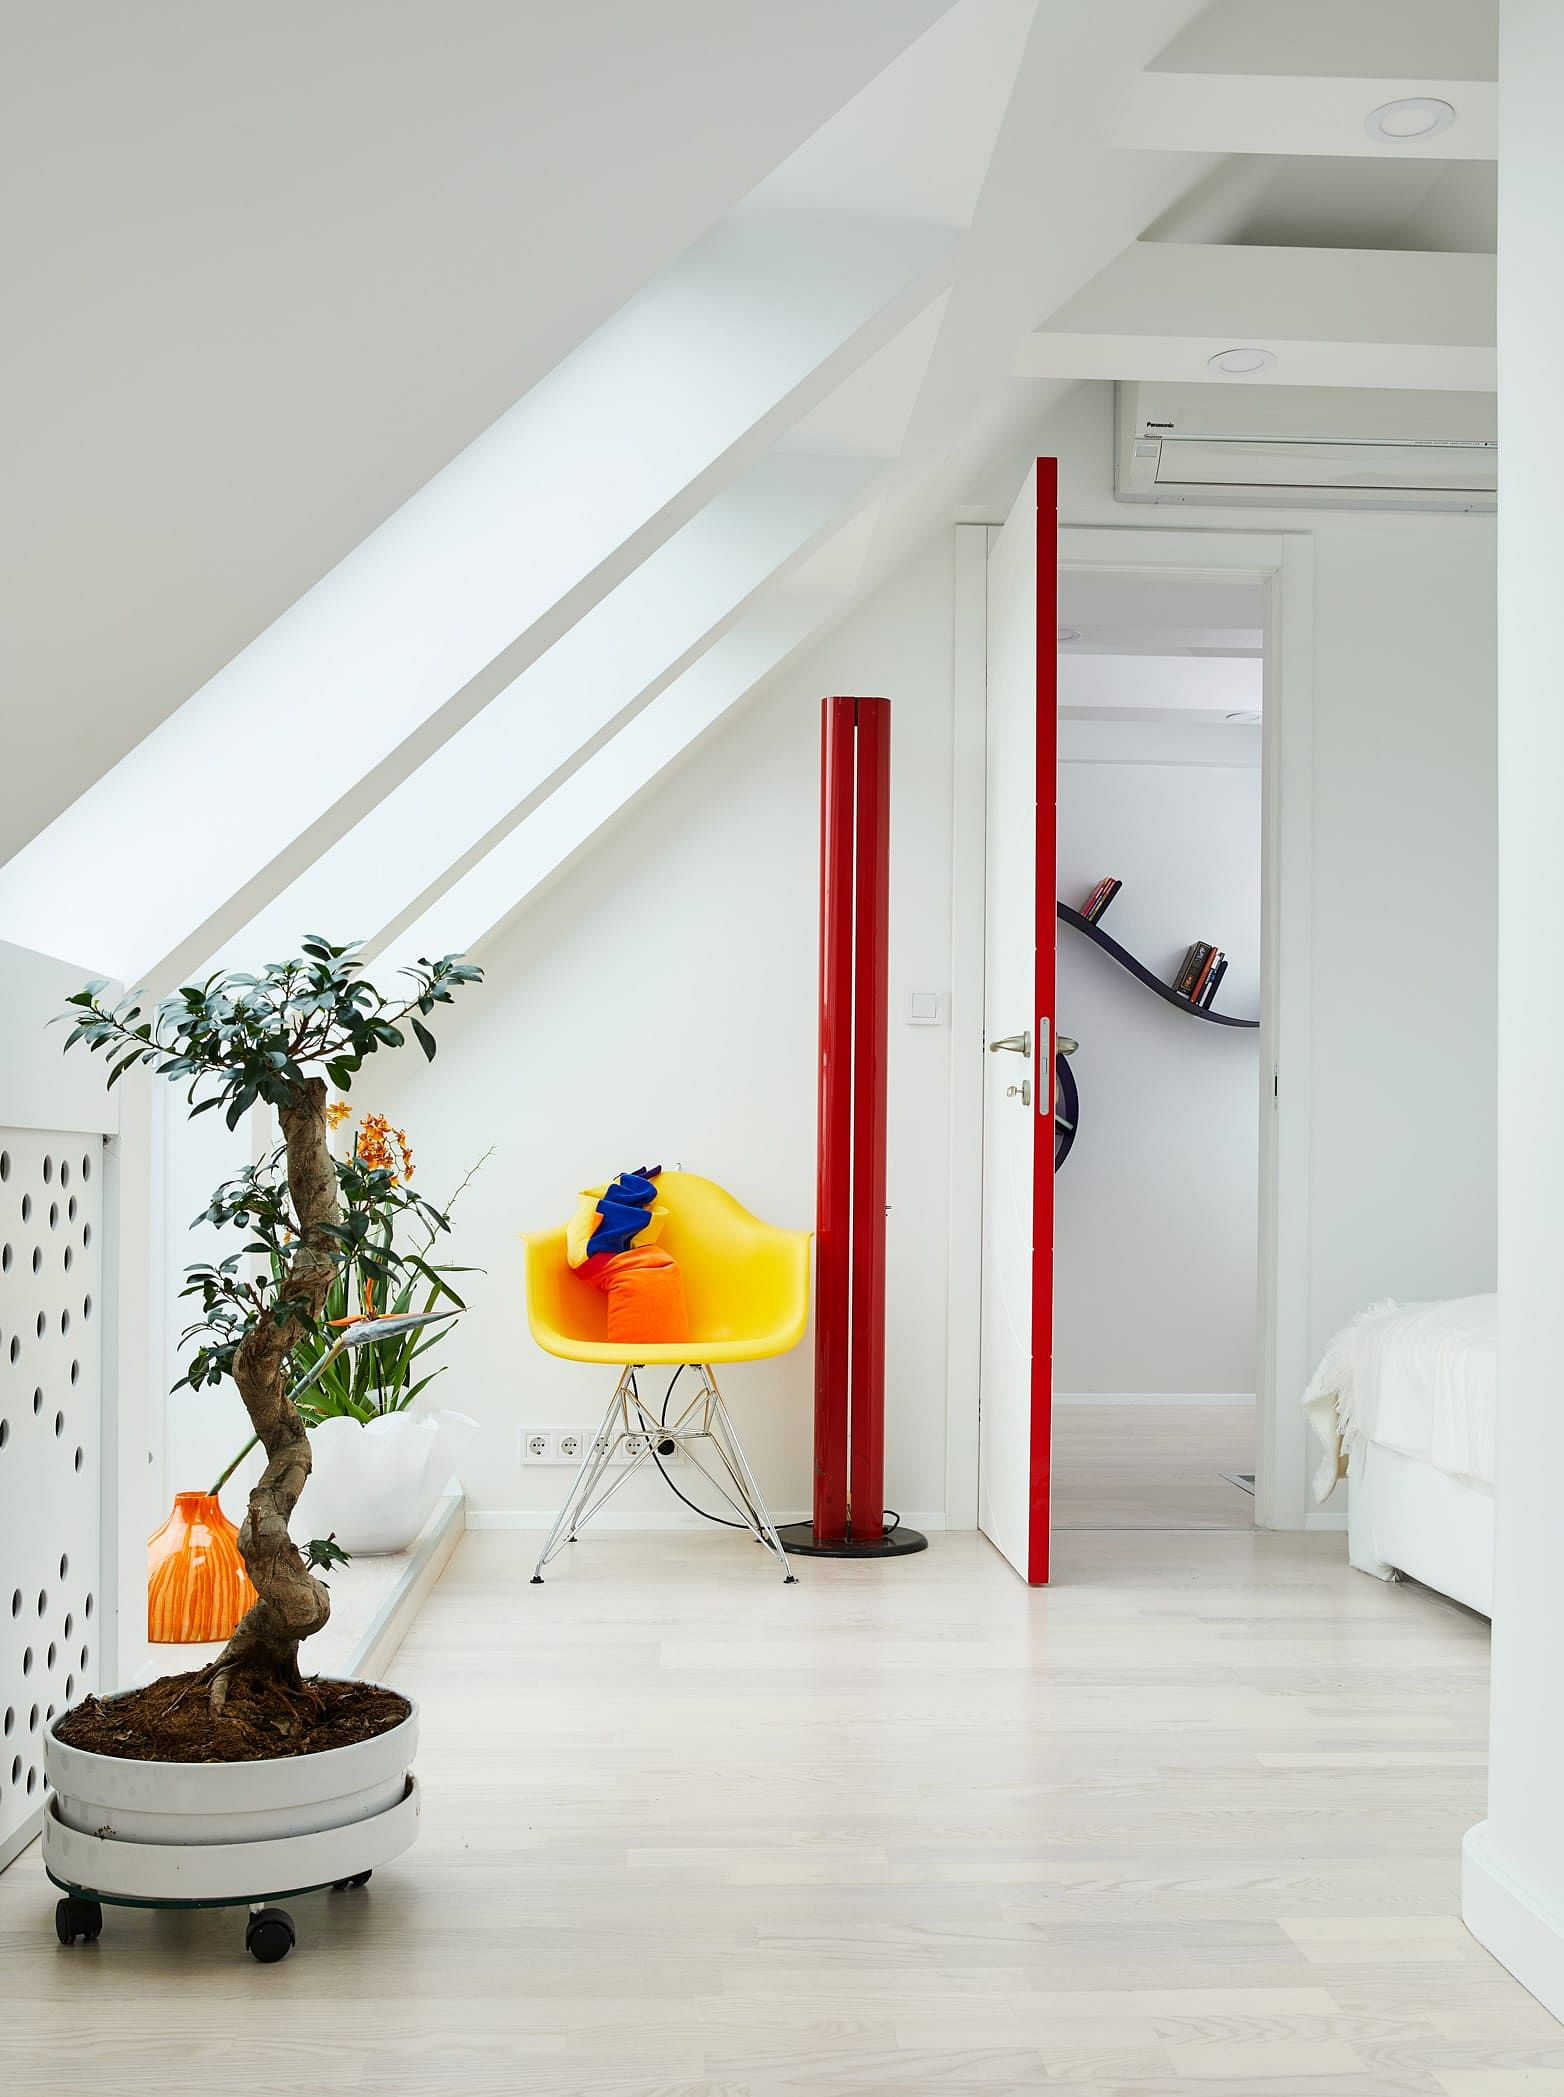 House Tour: A 110sqm all-white apartment decorated with neon-hued accessories title=